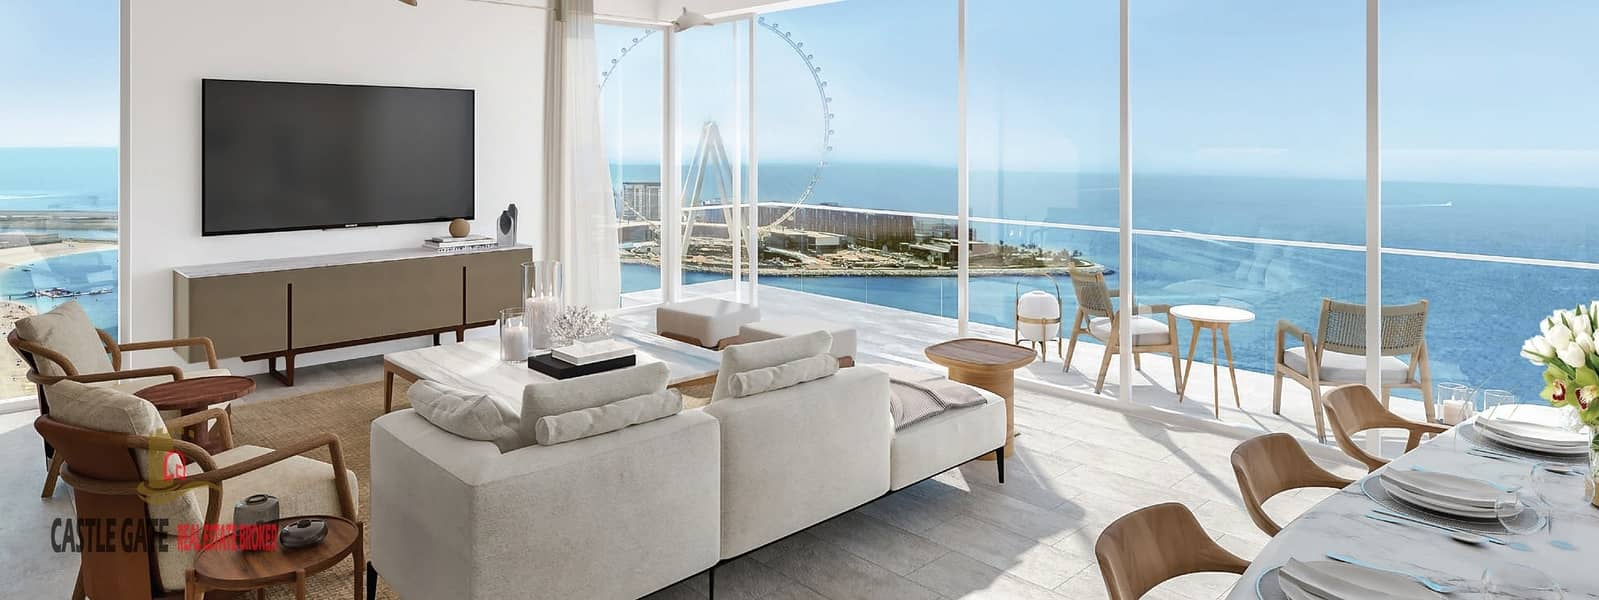 2 Luxury  1BHK With Direct Sea View